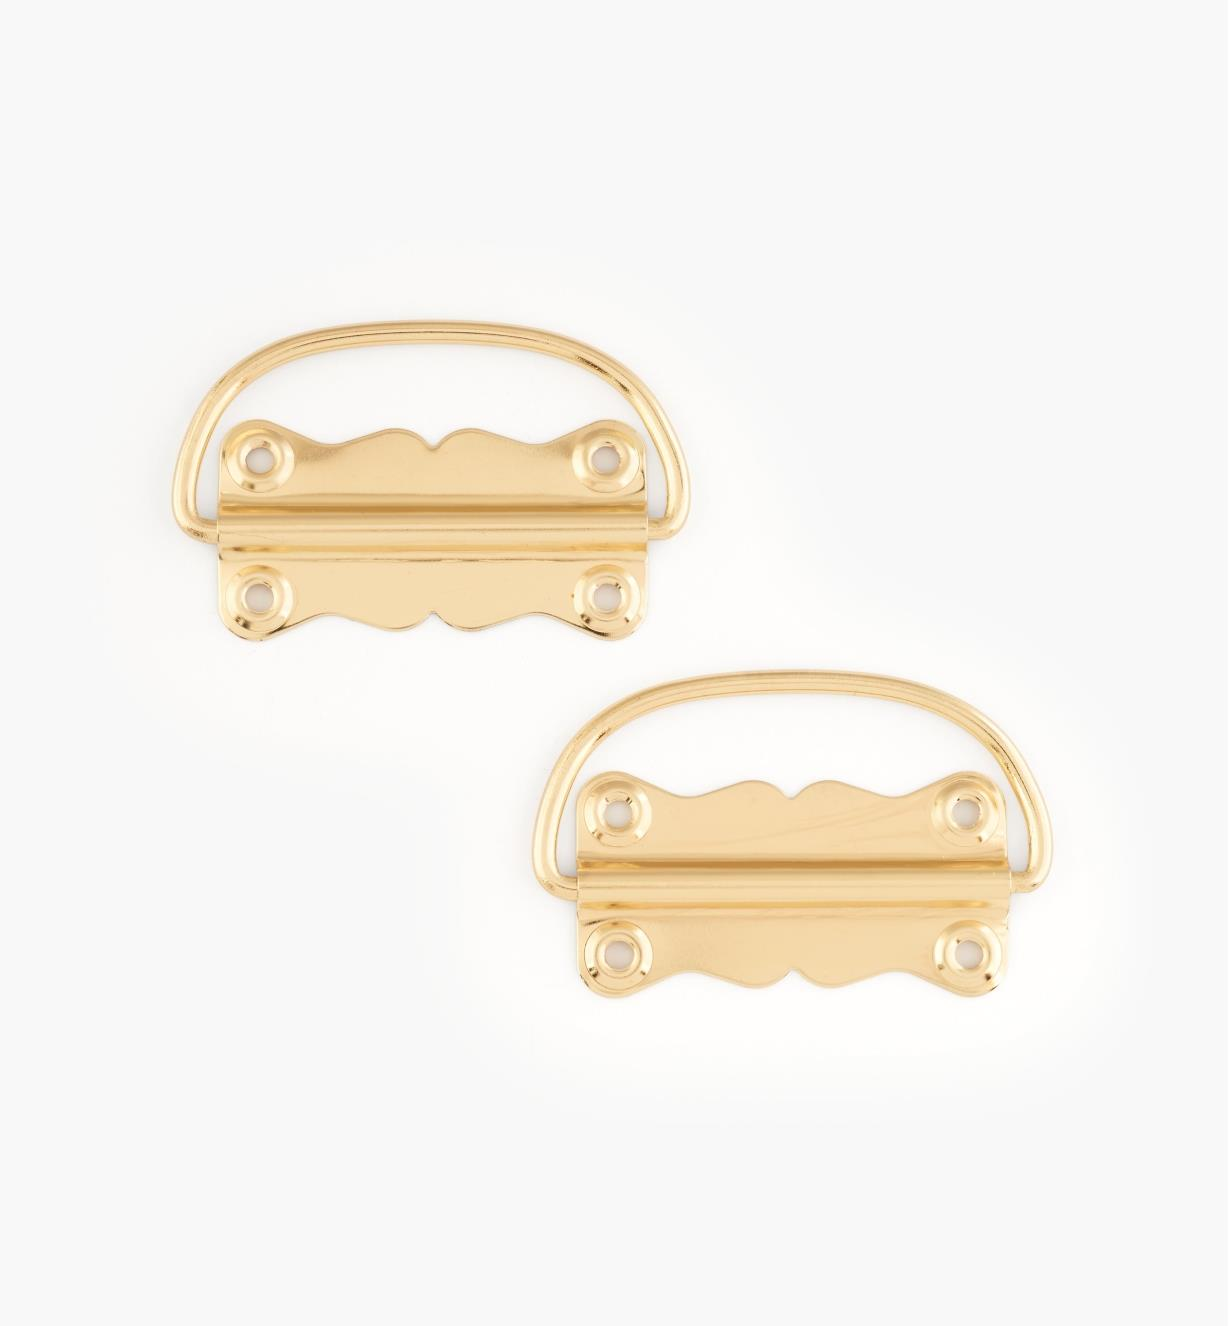 00D8170 - Brass Case Handles, pair